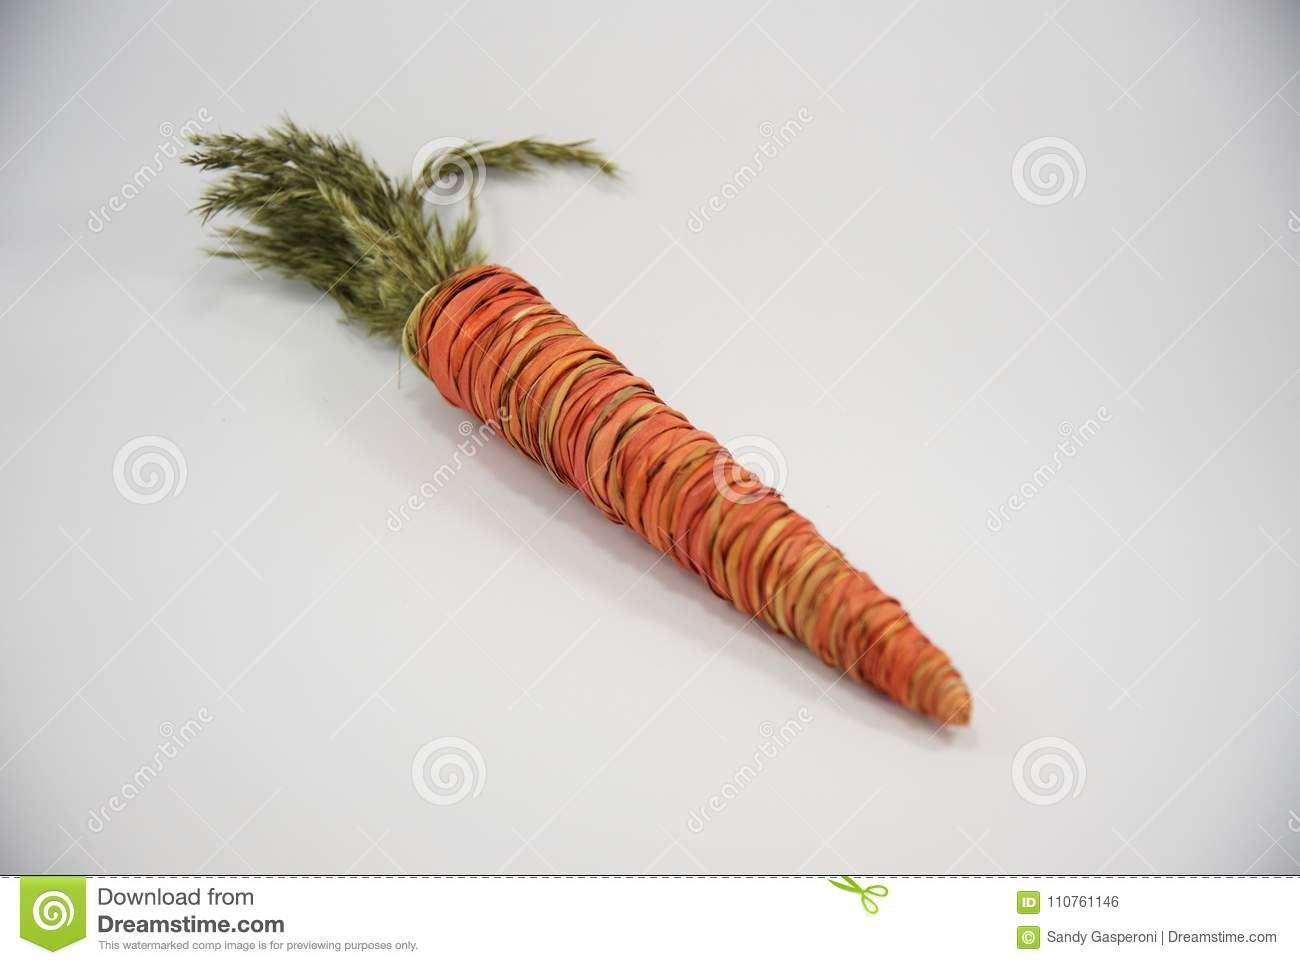 Easter Straw Decorative Carrot 32rd Stock Photo   Image of pastel ...